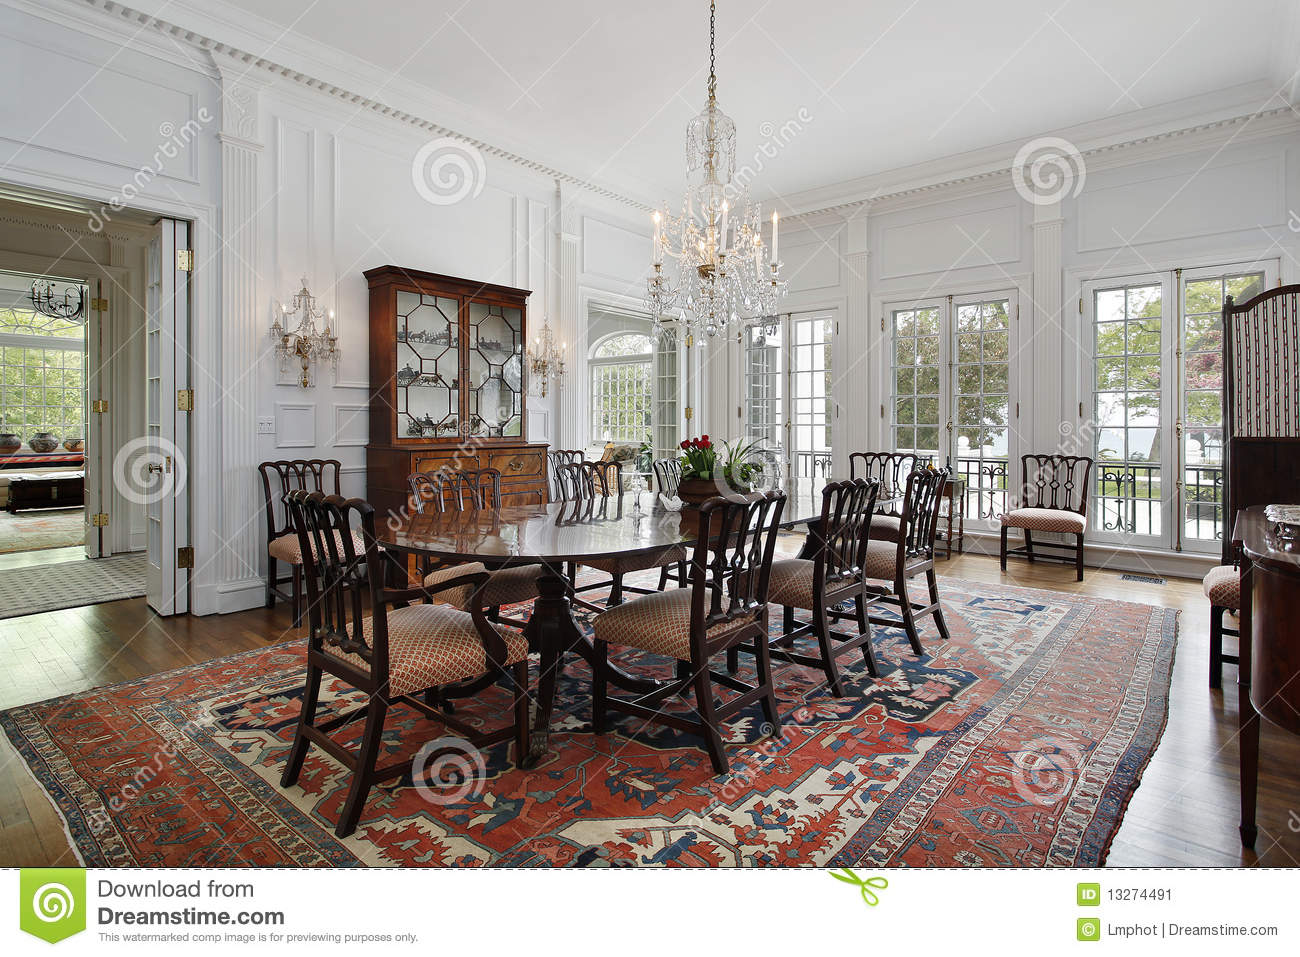 Dining Room In Traditional Home Stock Image Image Of Supper Furniture 13274491